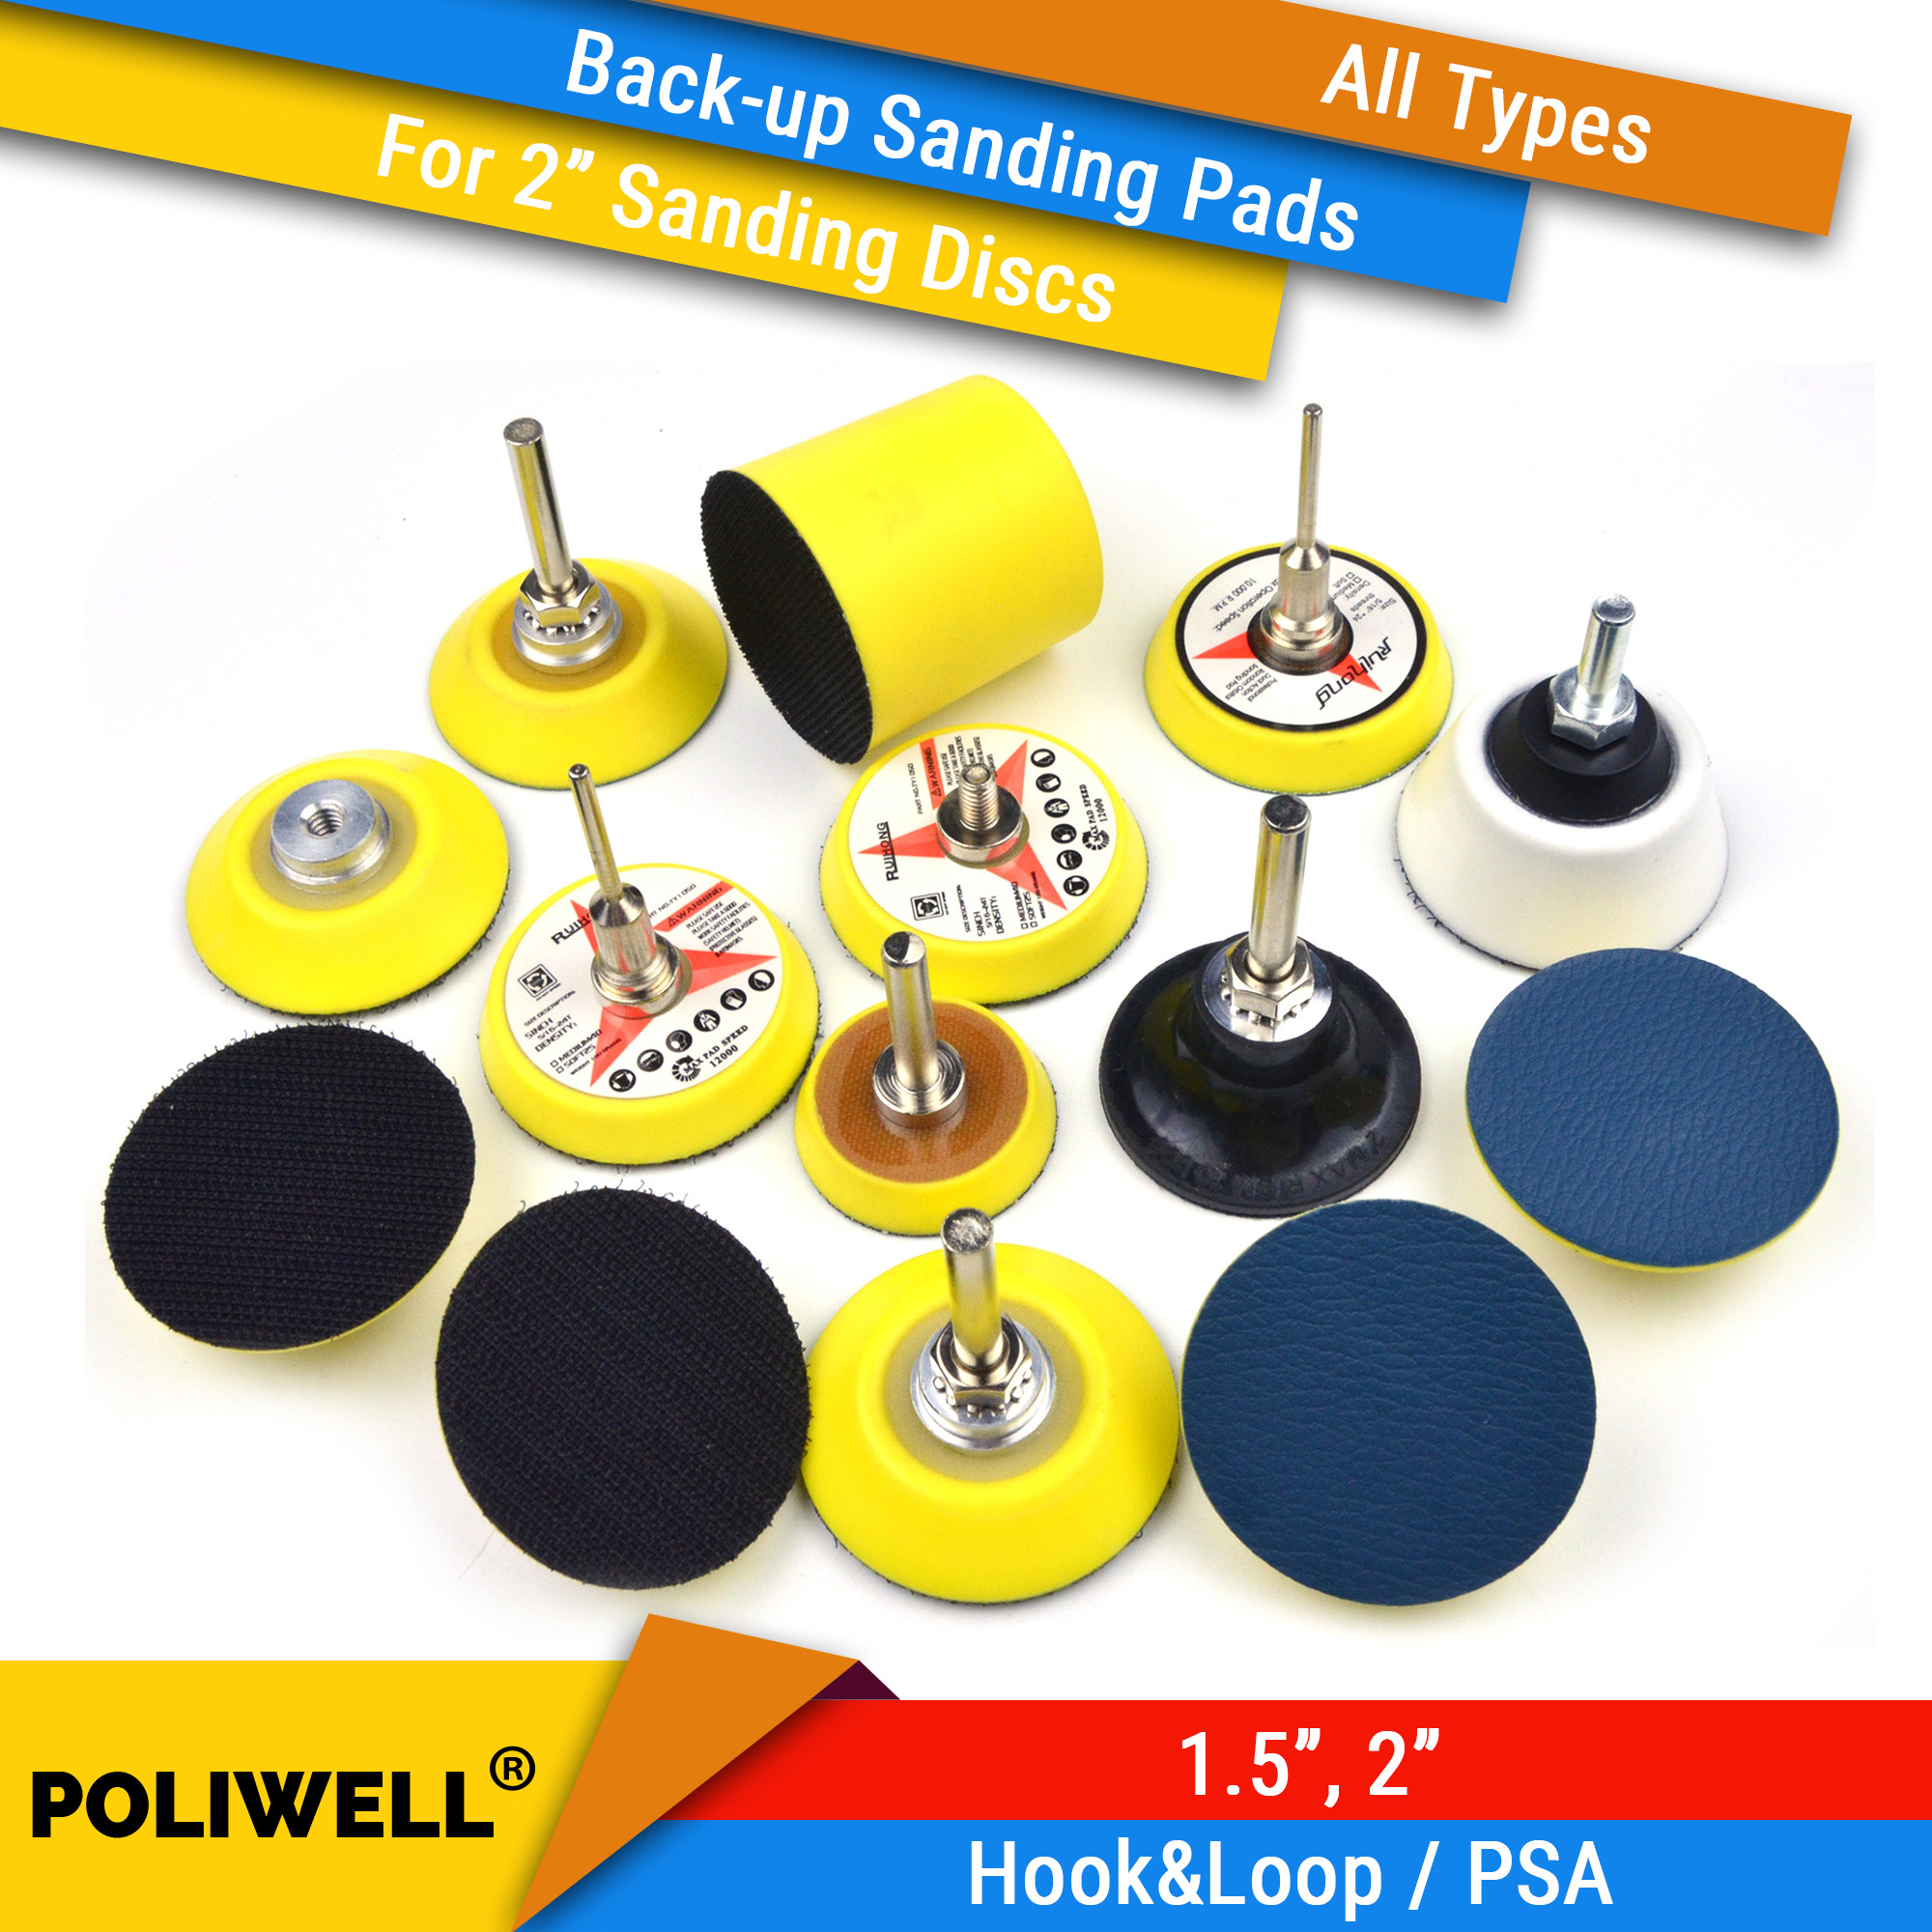 1.5/2 Inch All Types Back-up Sanding Pads For Abrasive Sandpaper Sanding Discs For Woodworking Polishing Tool Accessories